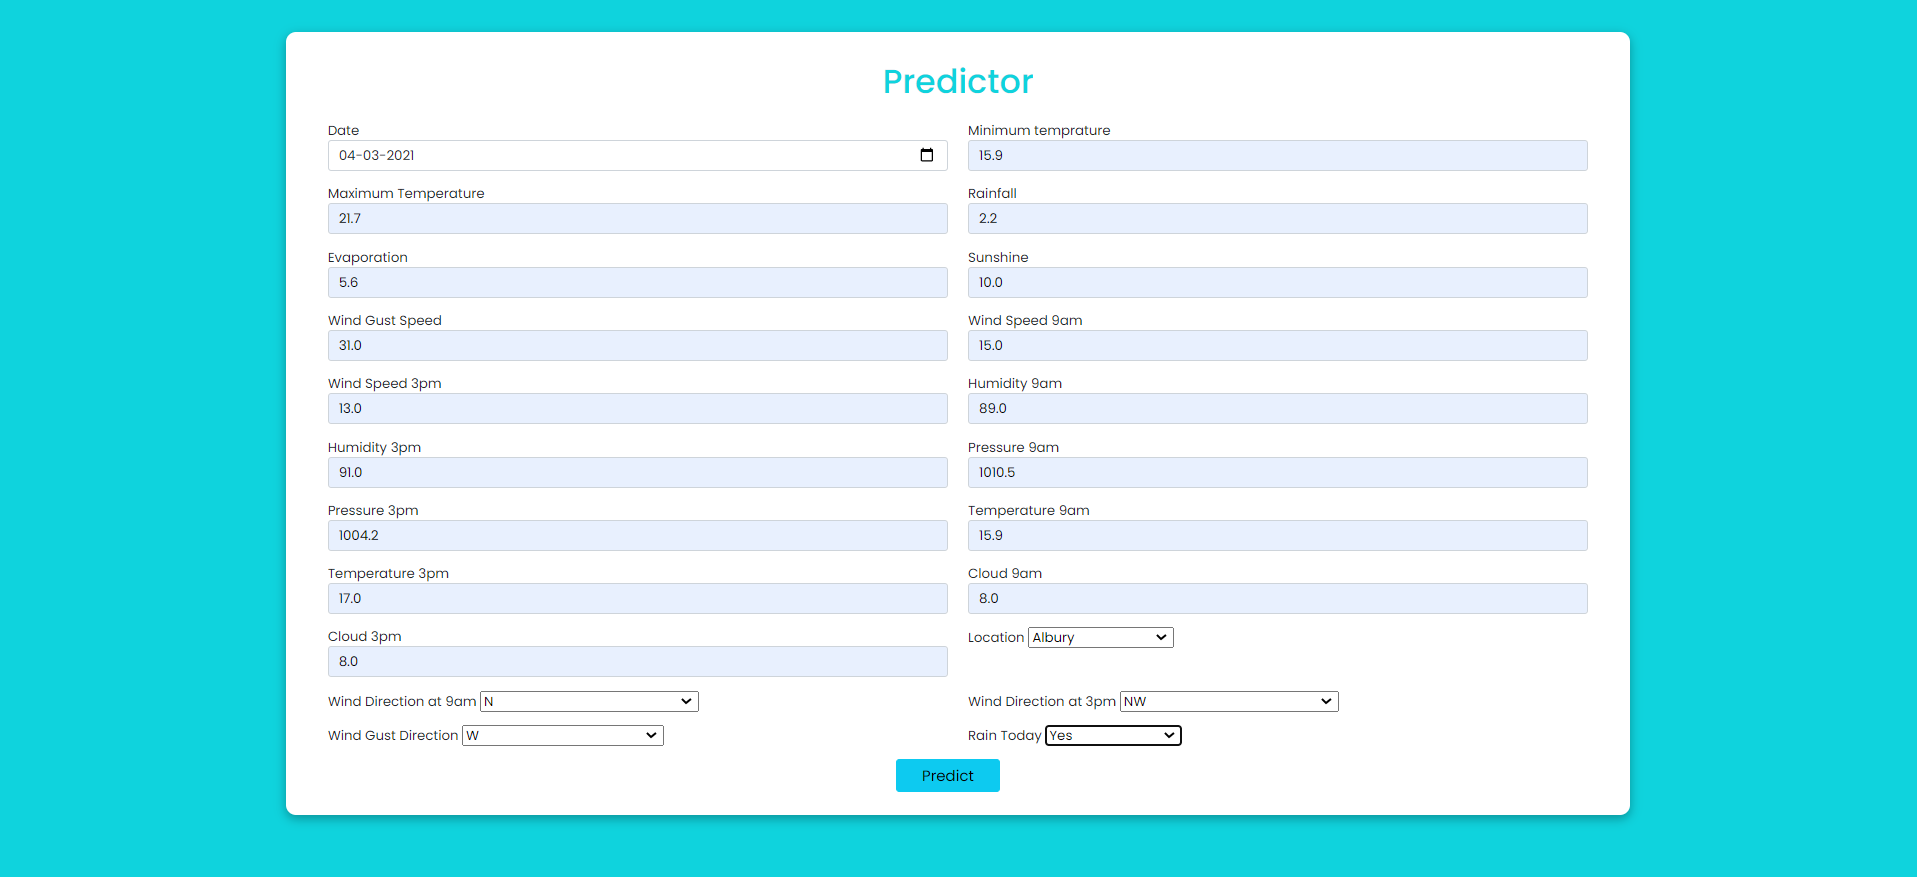 Predictor Values for Rainy Day